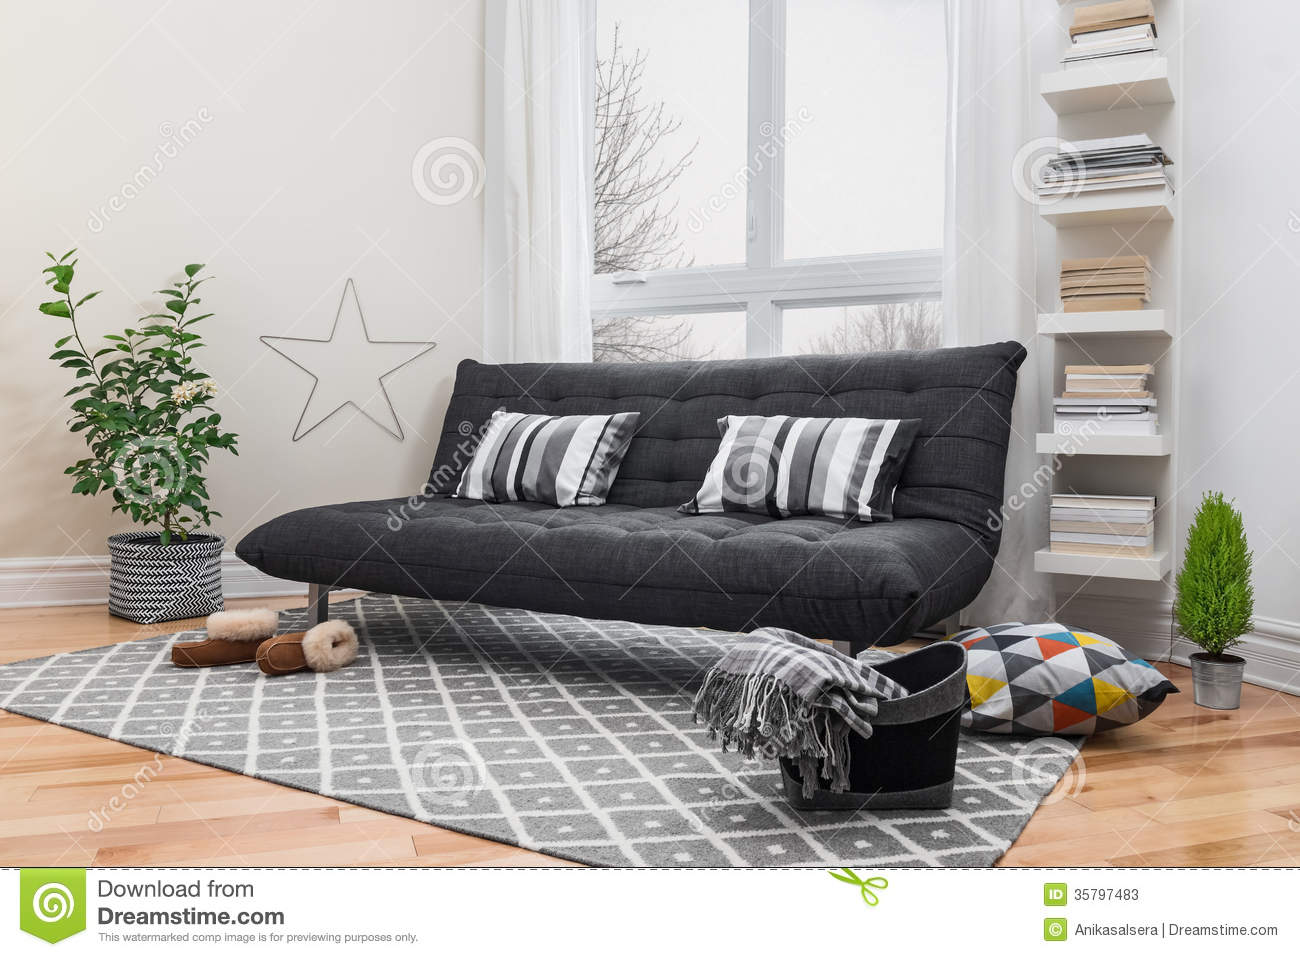 Spacious living room with modern decor stock photos image 35797483 - Modern furnishings decor images ...